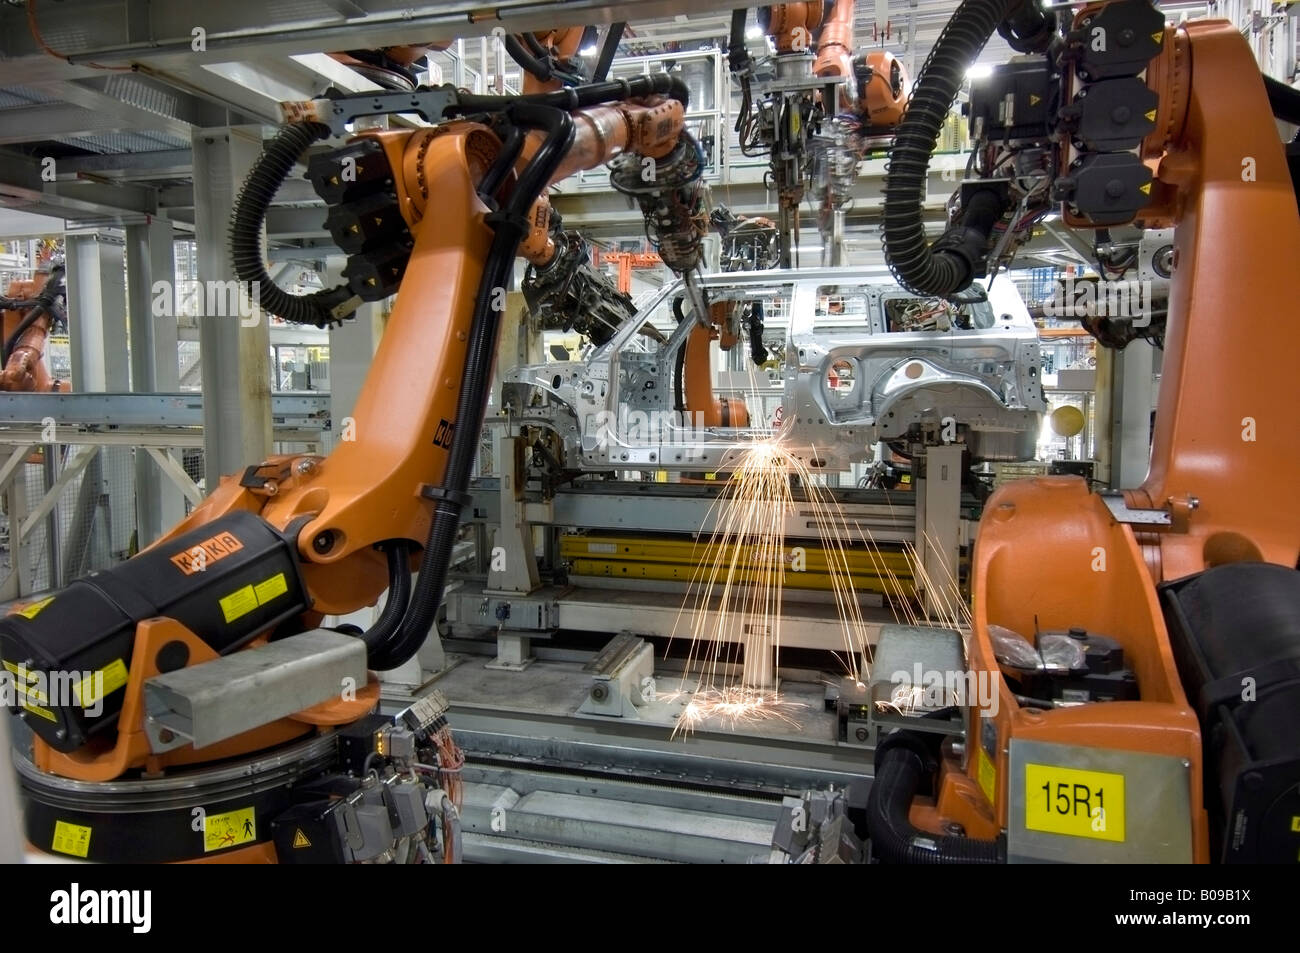 Mini Clubman production line at the BMW factory at Cowley, Oxford UK - Stock Image